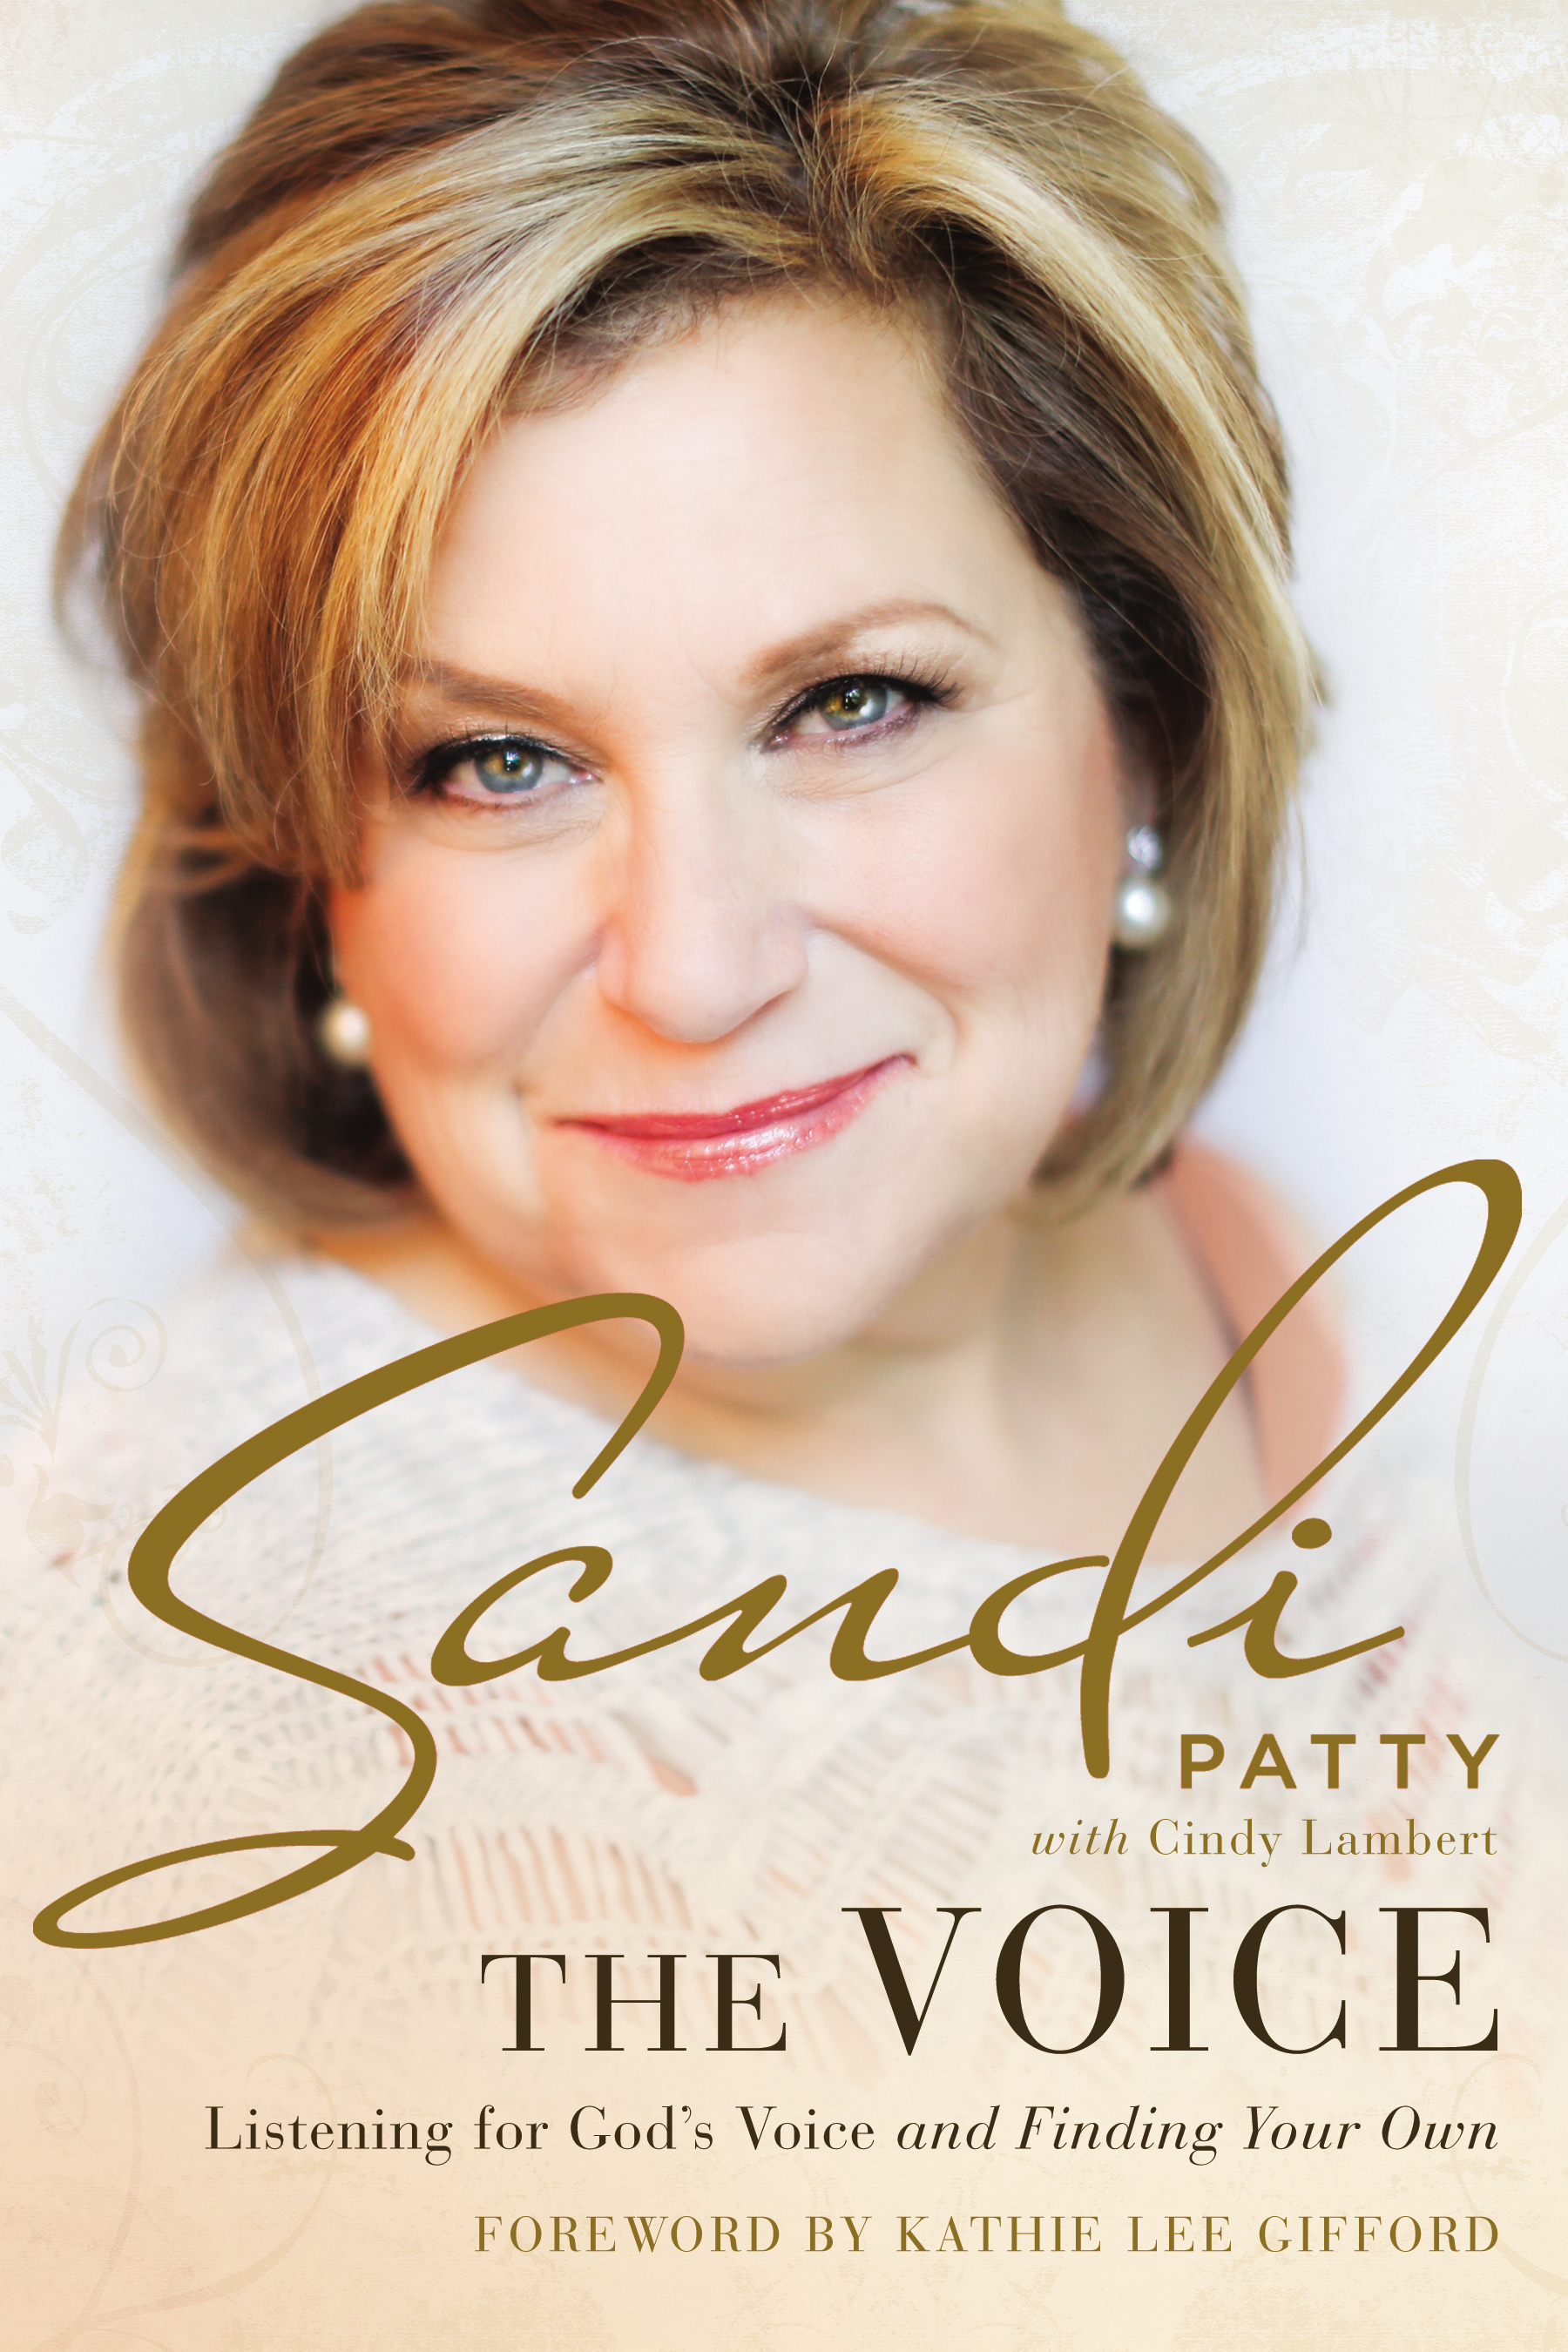 Sandi Patty new book, The Voice